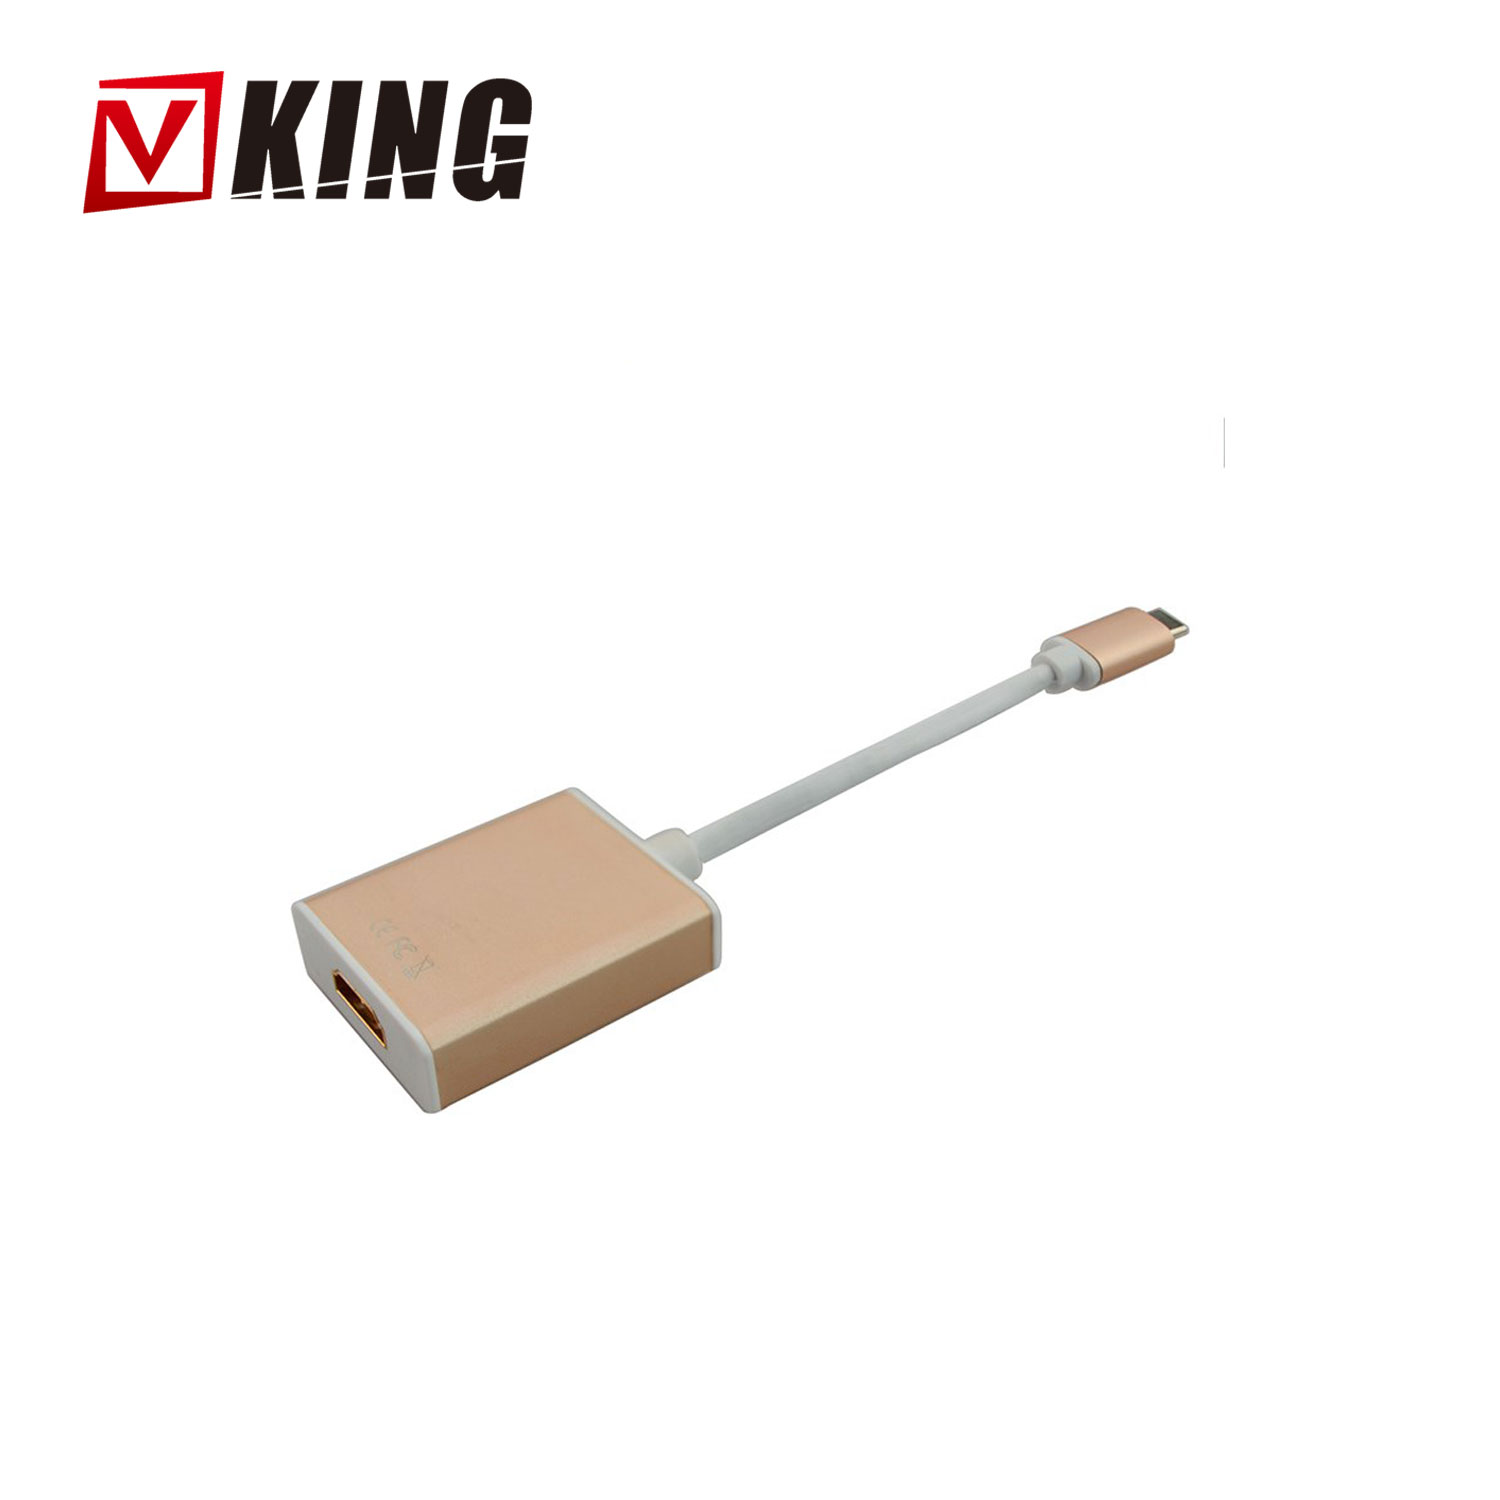 usb 3.1 type c to hdmi 2.0 adapter High Quality OEM ODM China Shenzhen Manufacturer